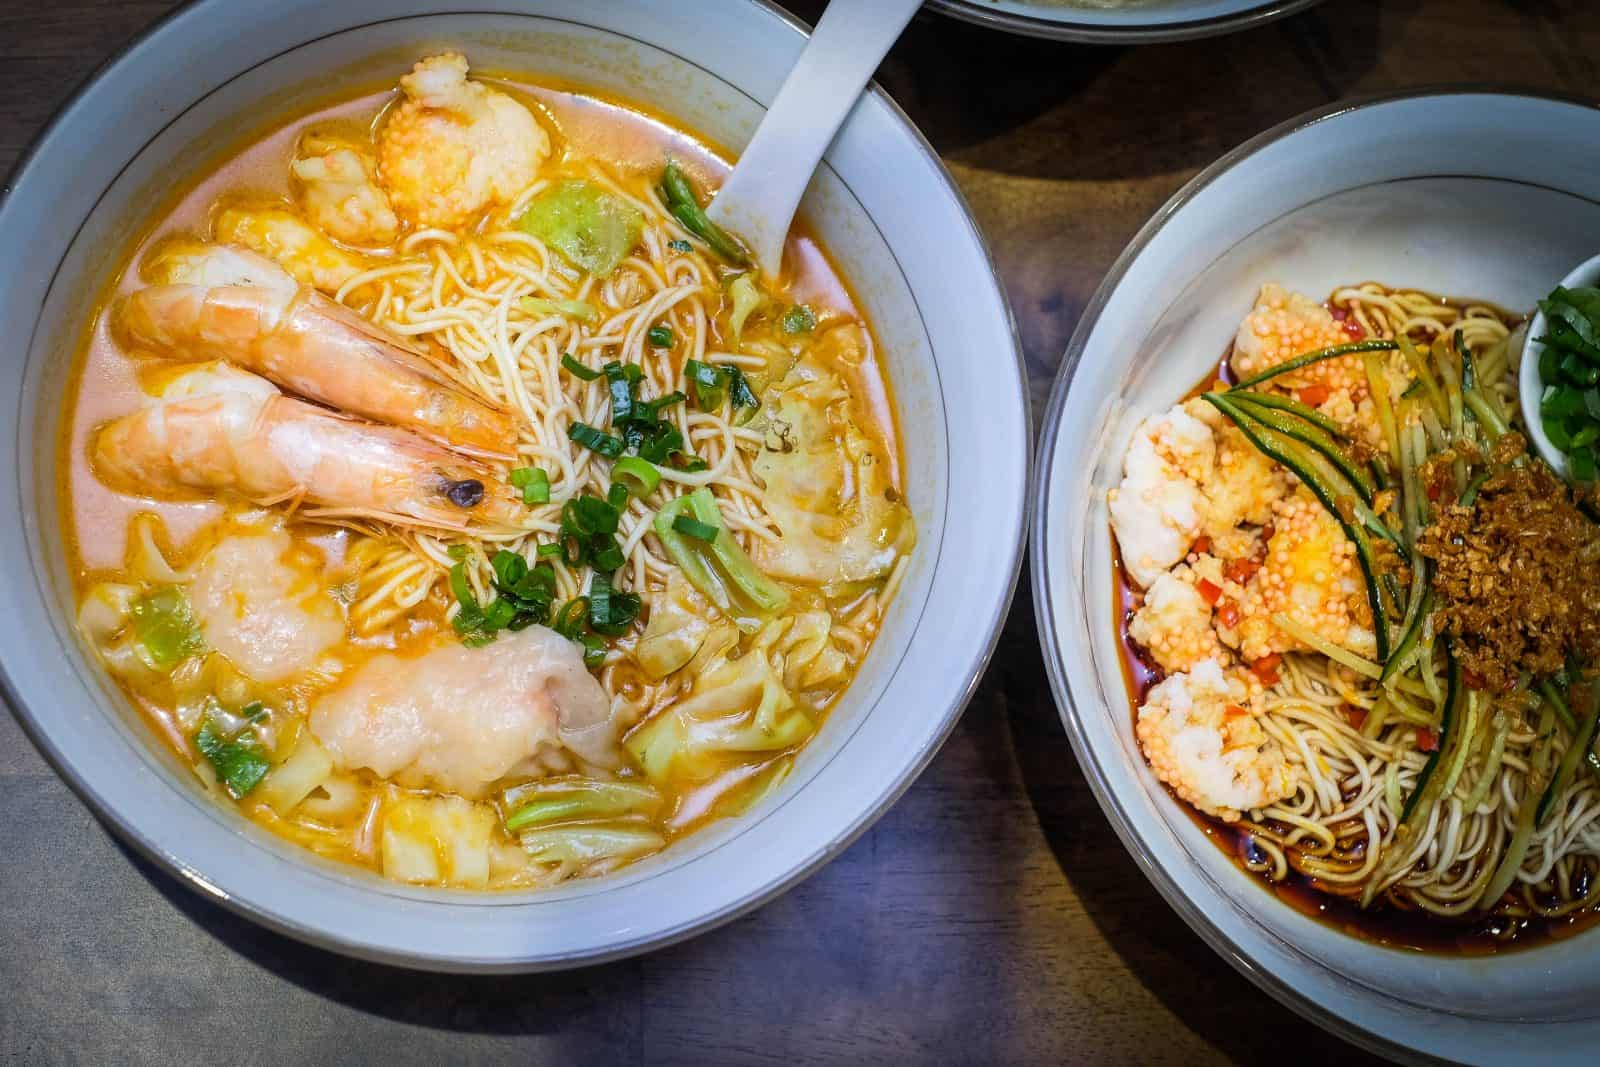 Le Shrimp Ramen Chinese La Mian At Paragon With Specialty Shrimp Broth